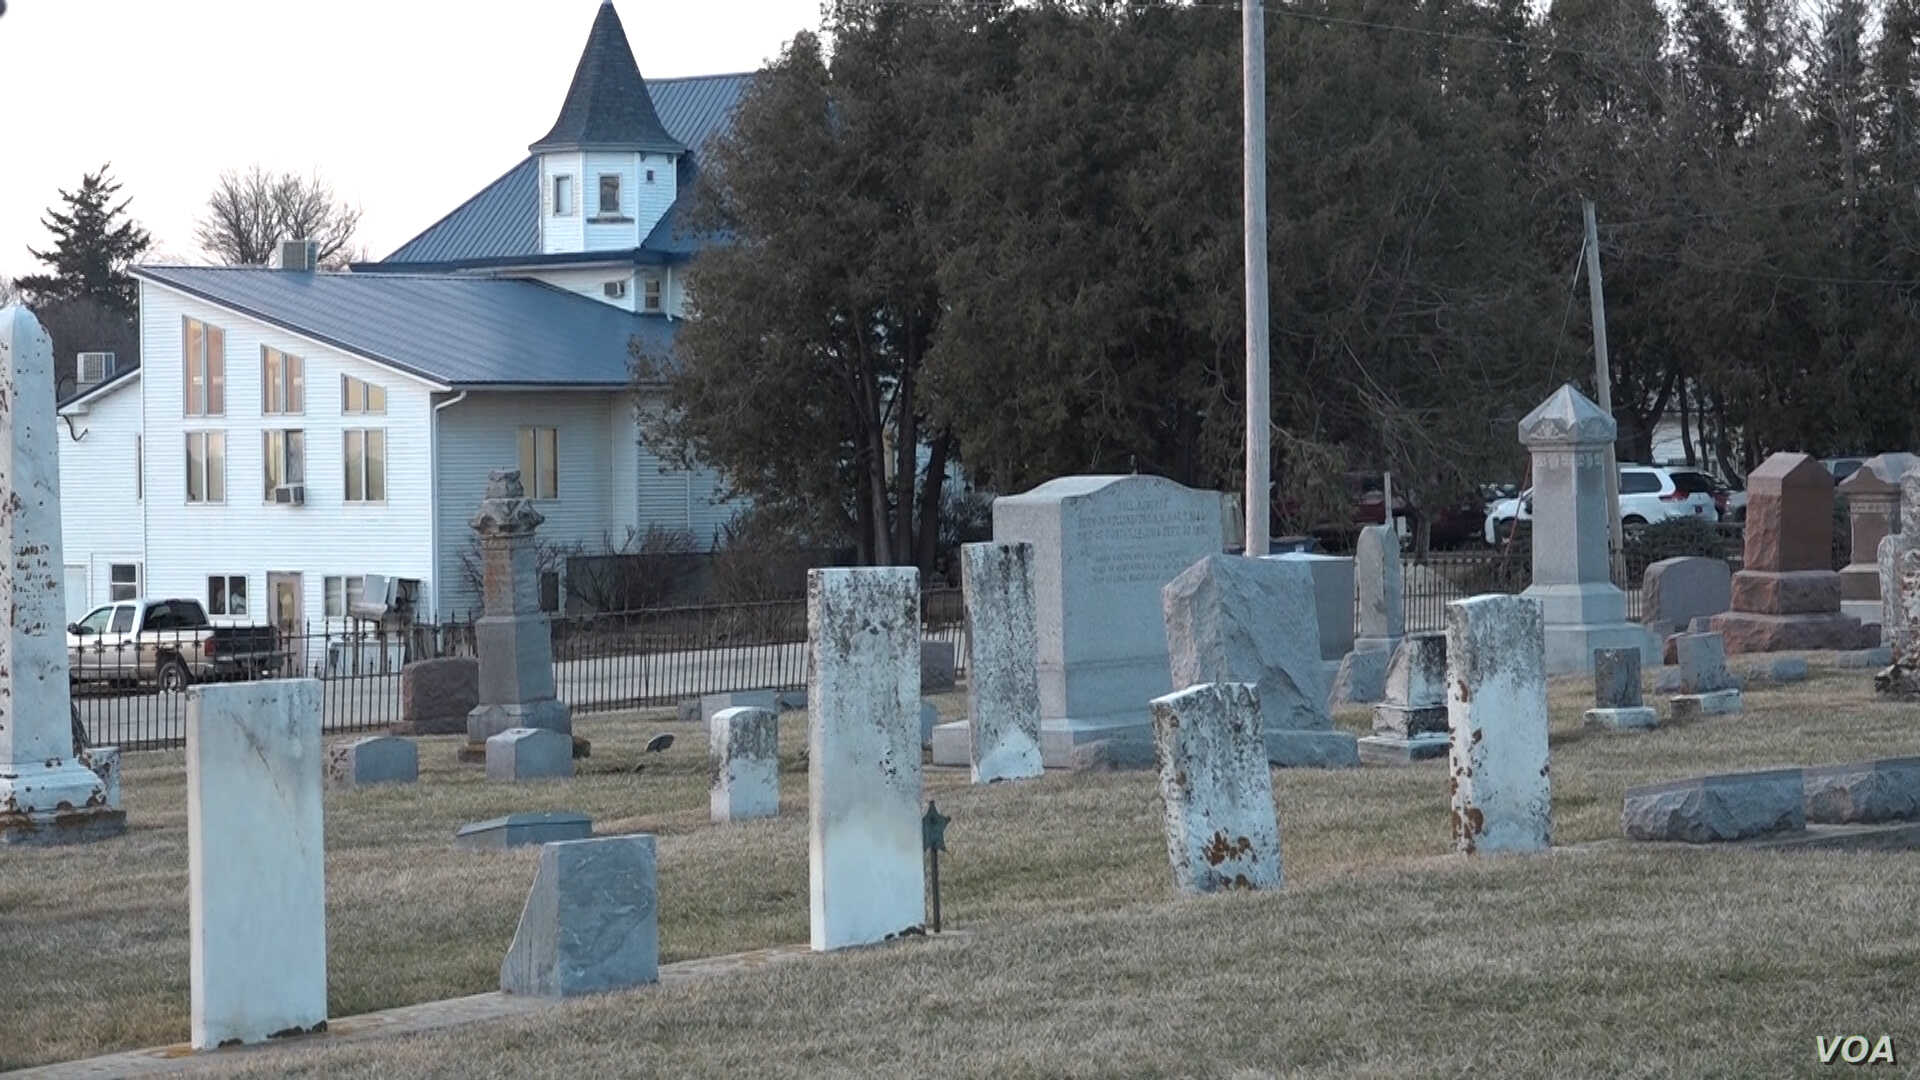 Behind these tombstones in a Christian cemetery is the house that serves as the synagogue for the Postville Jewish community. (G. Flakus/VOA)